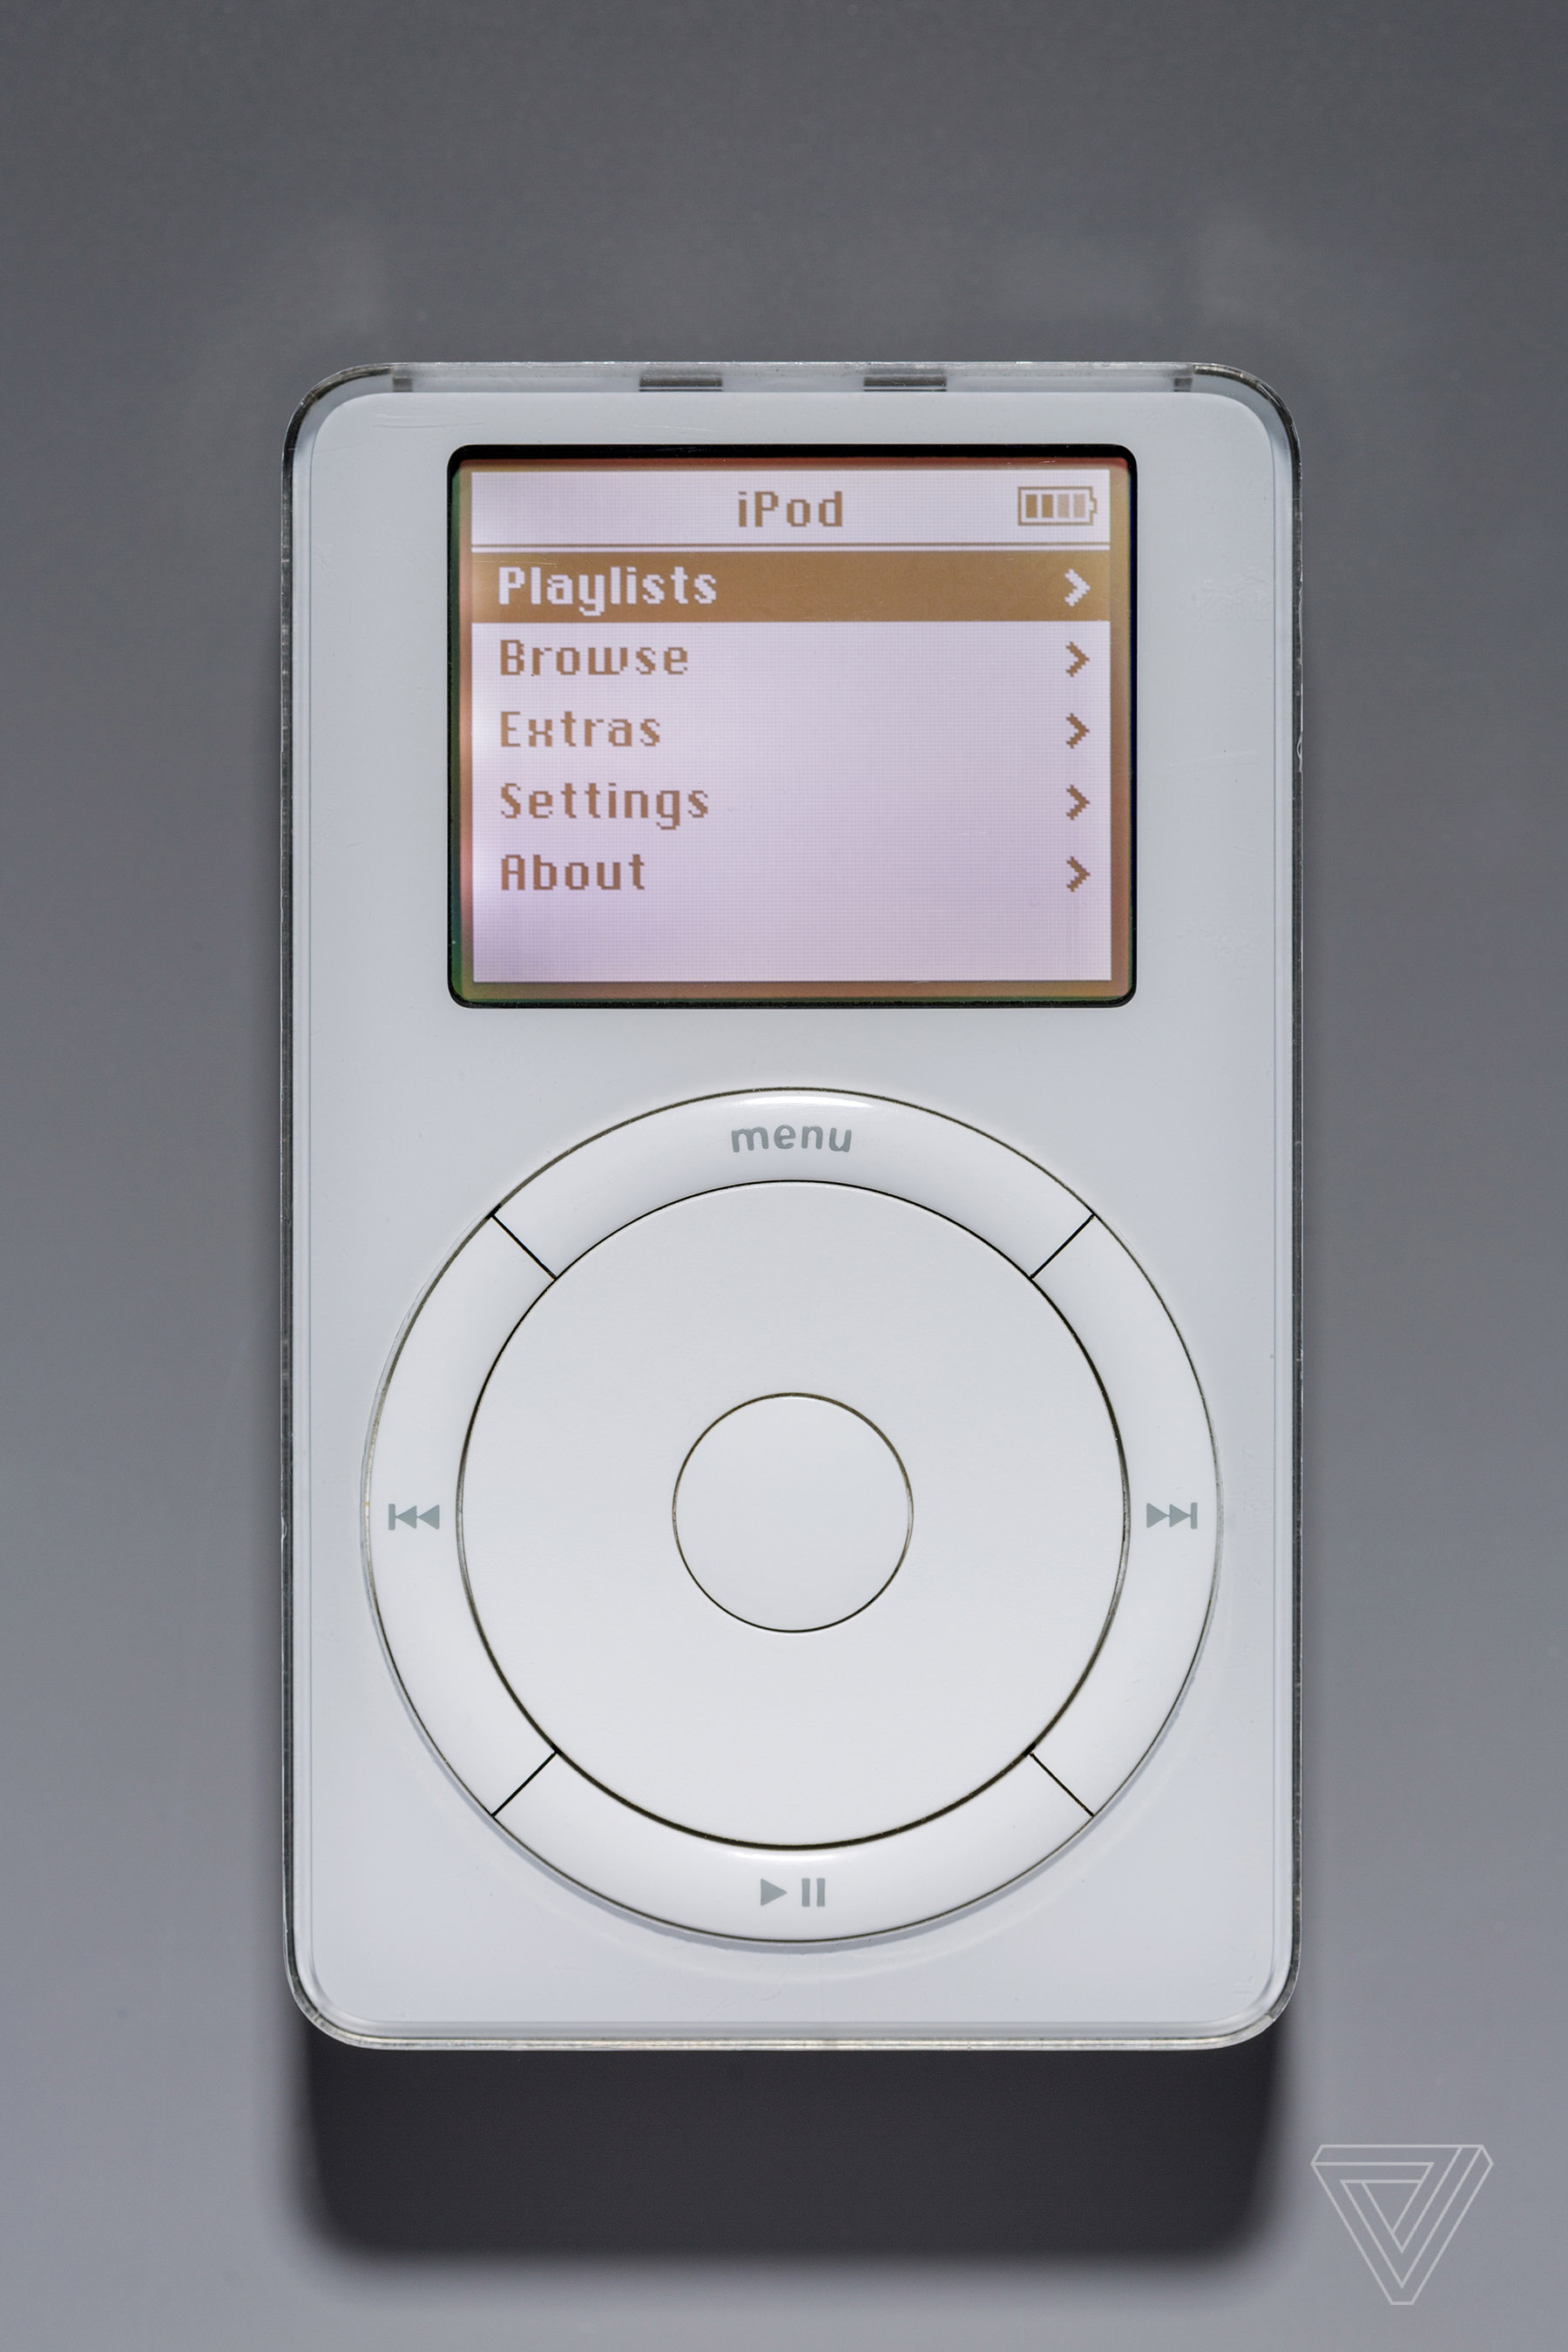 My original iPod is a time capsule from 2002 - The Verge